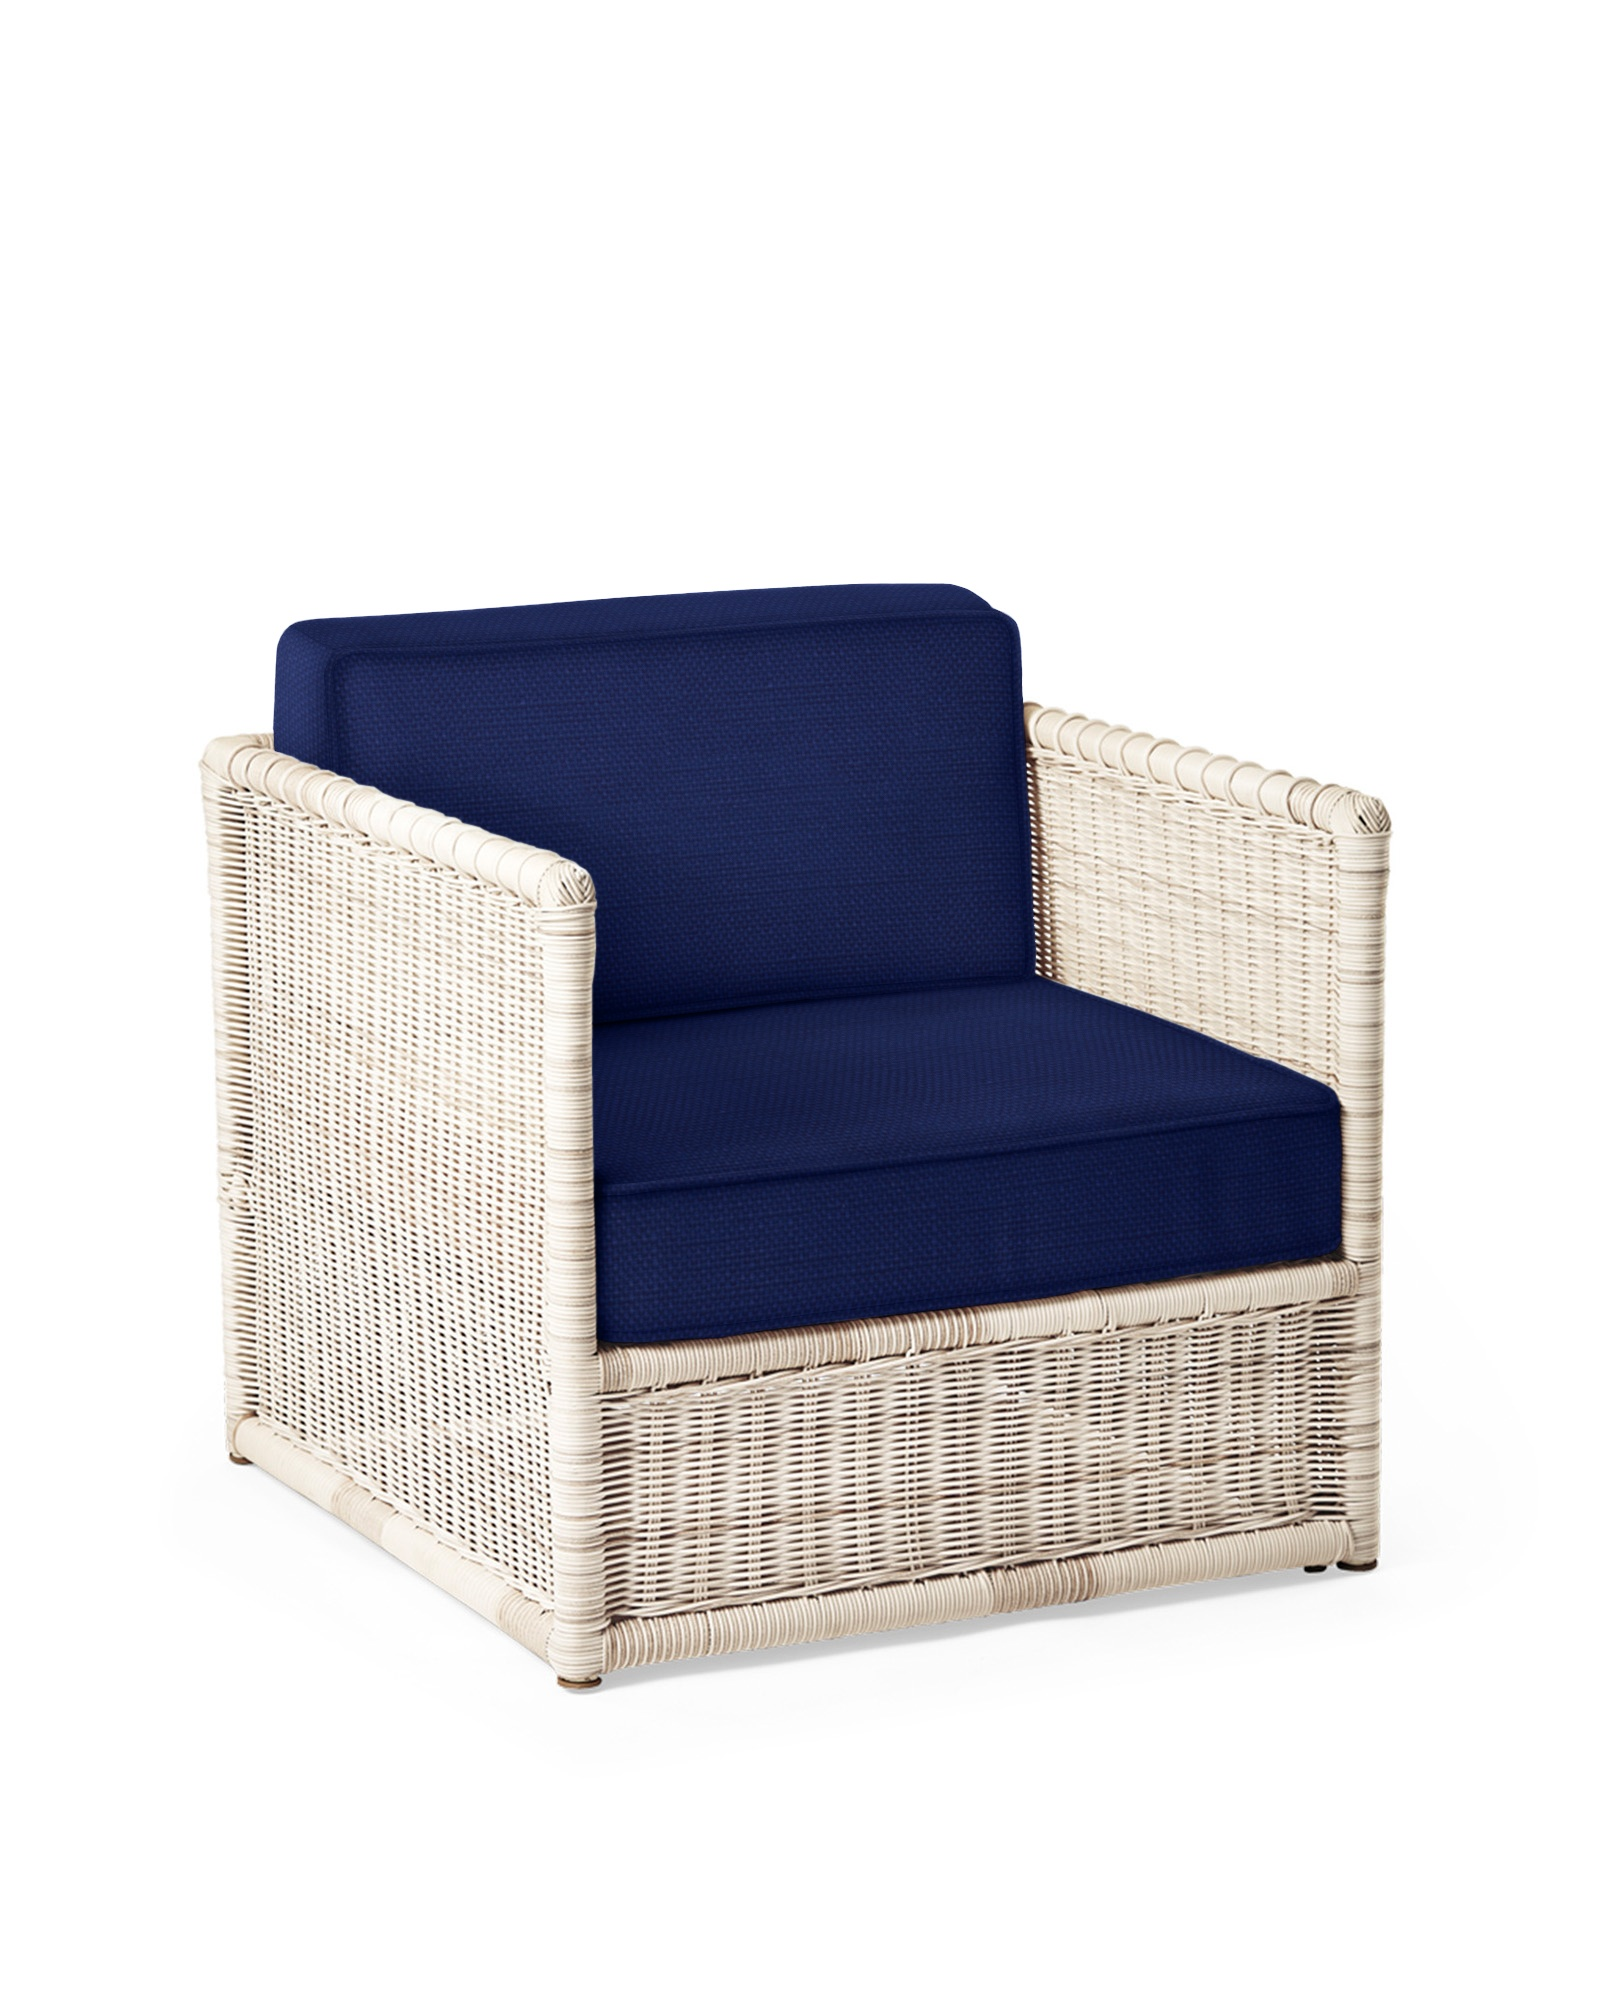 Cushion Cover for Pacifica Lounge Chair, Perennials Basketweave Navy